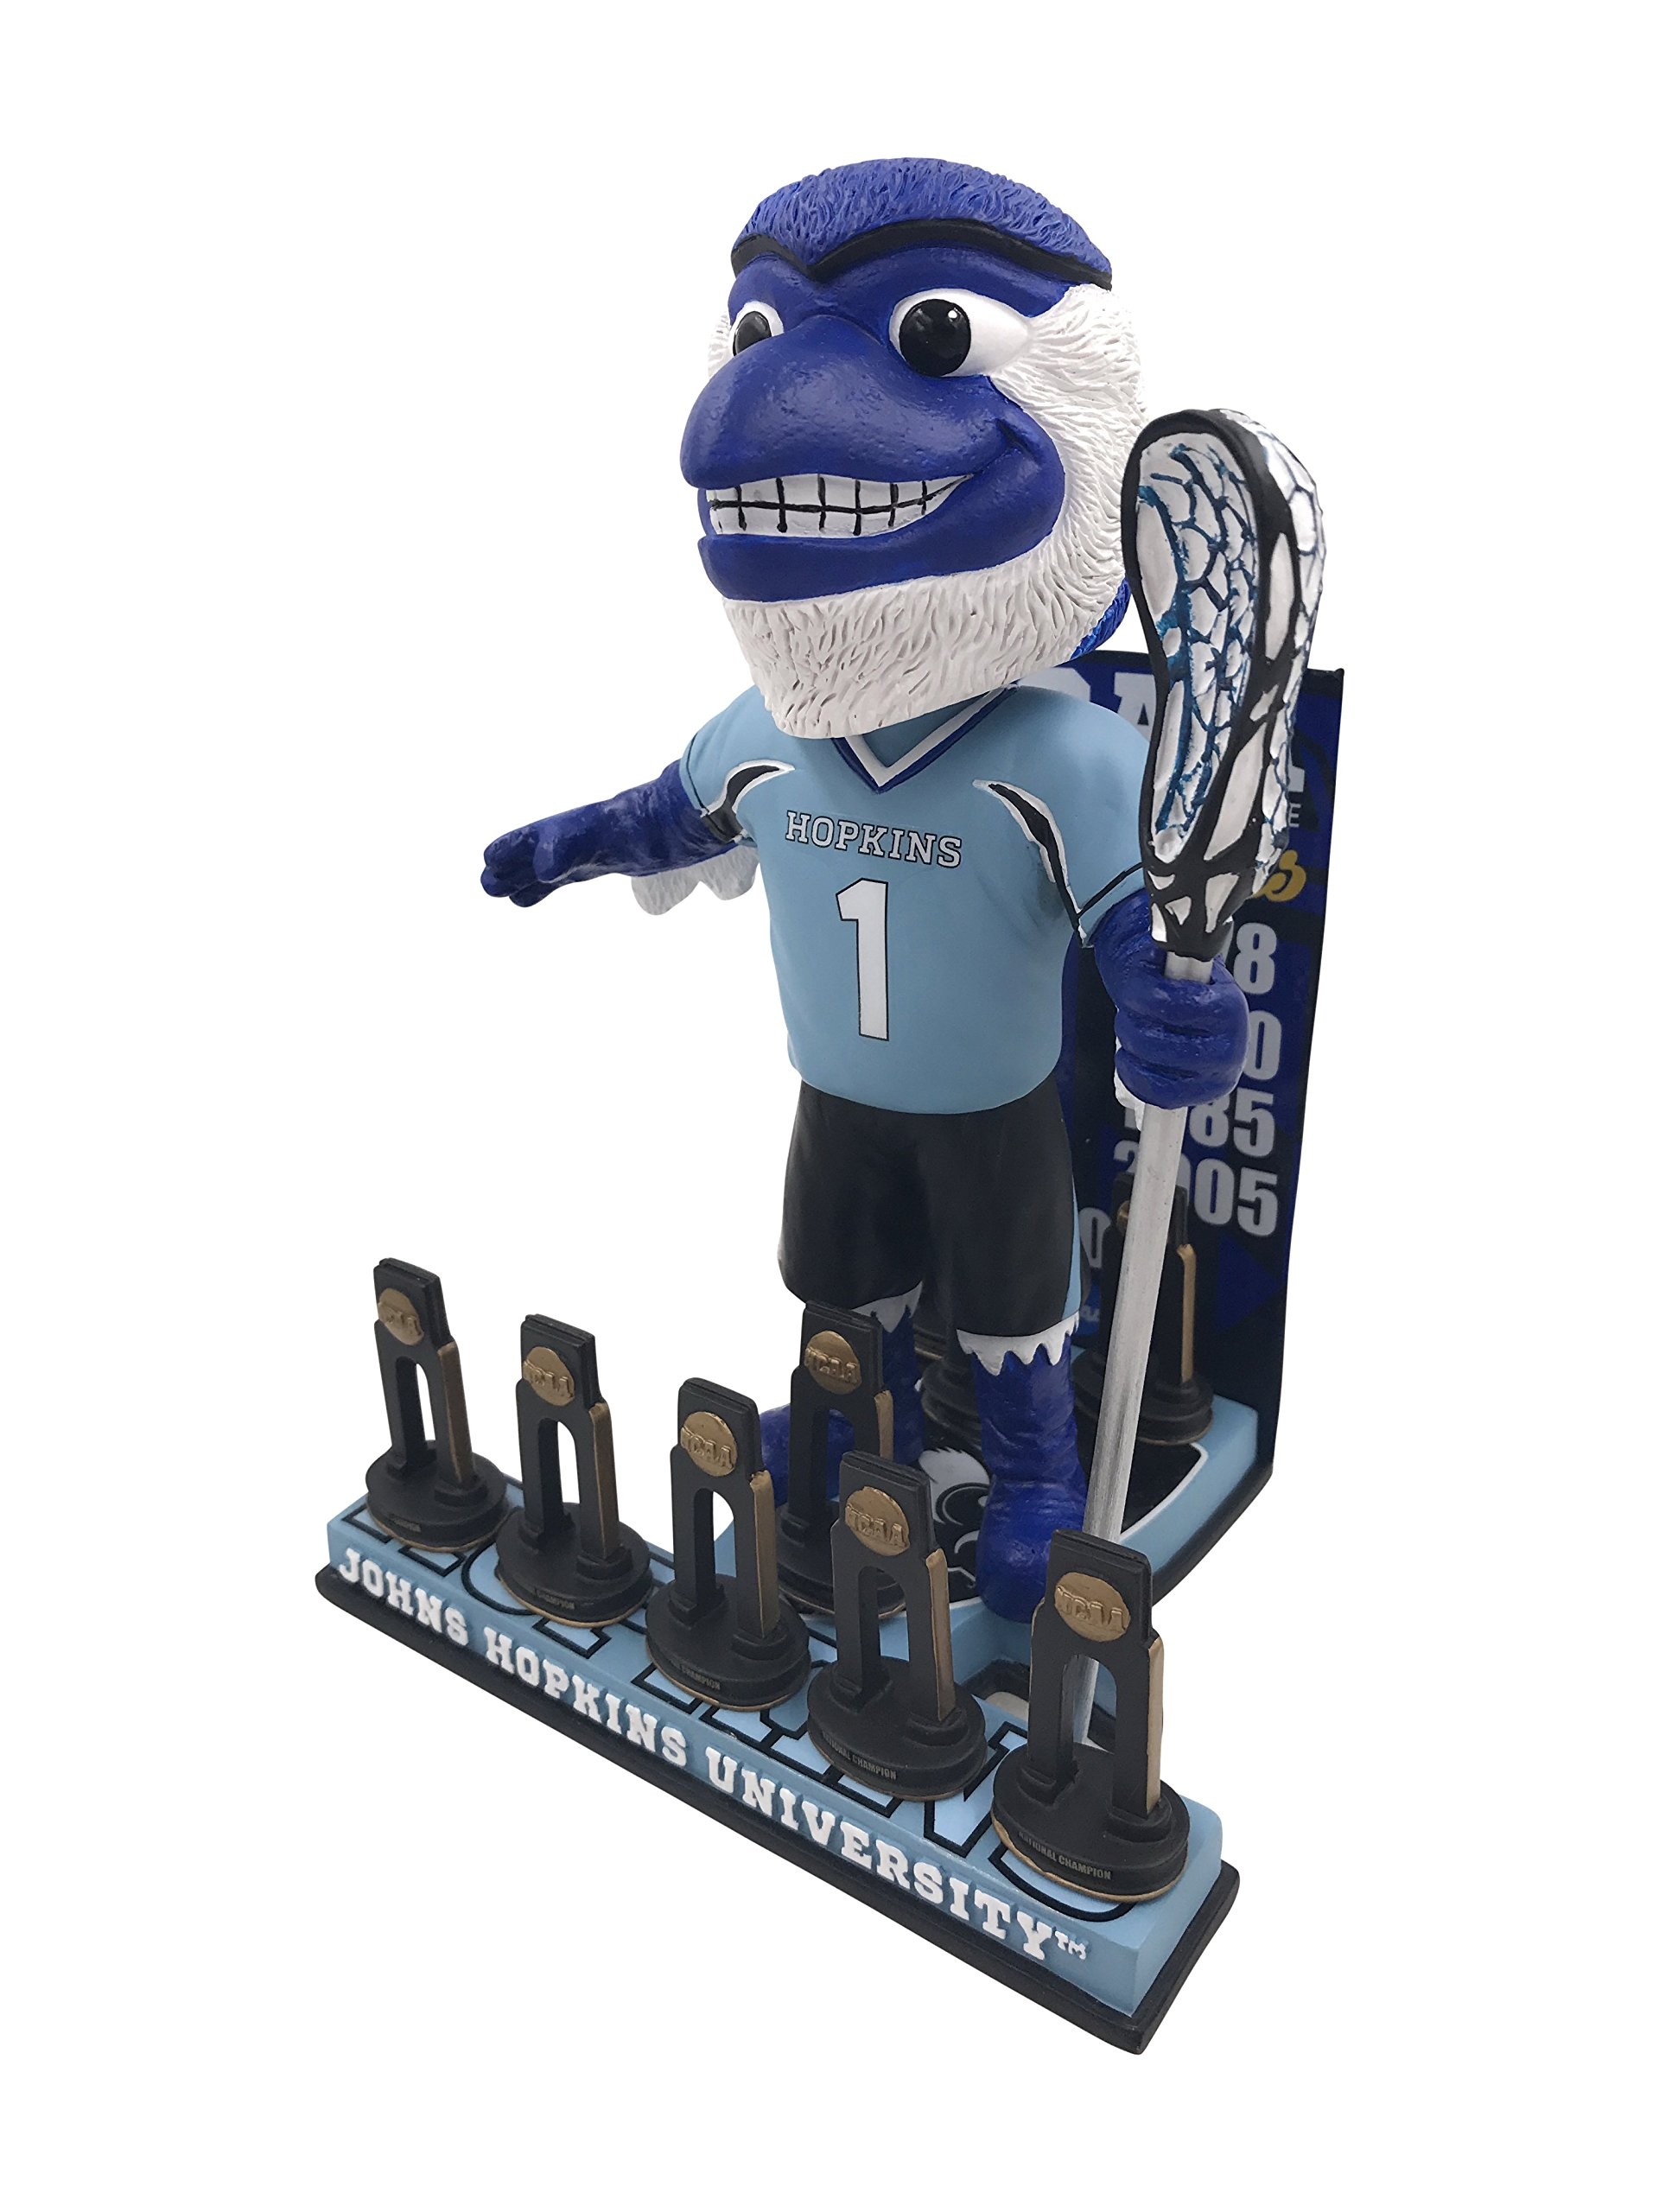 Blue Jay Johns Hopkins University Men's Lacrosse National Champions Bobblehead by Forever Collectibles (Image #3)